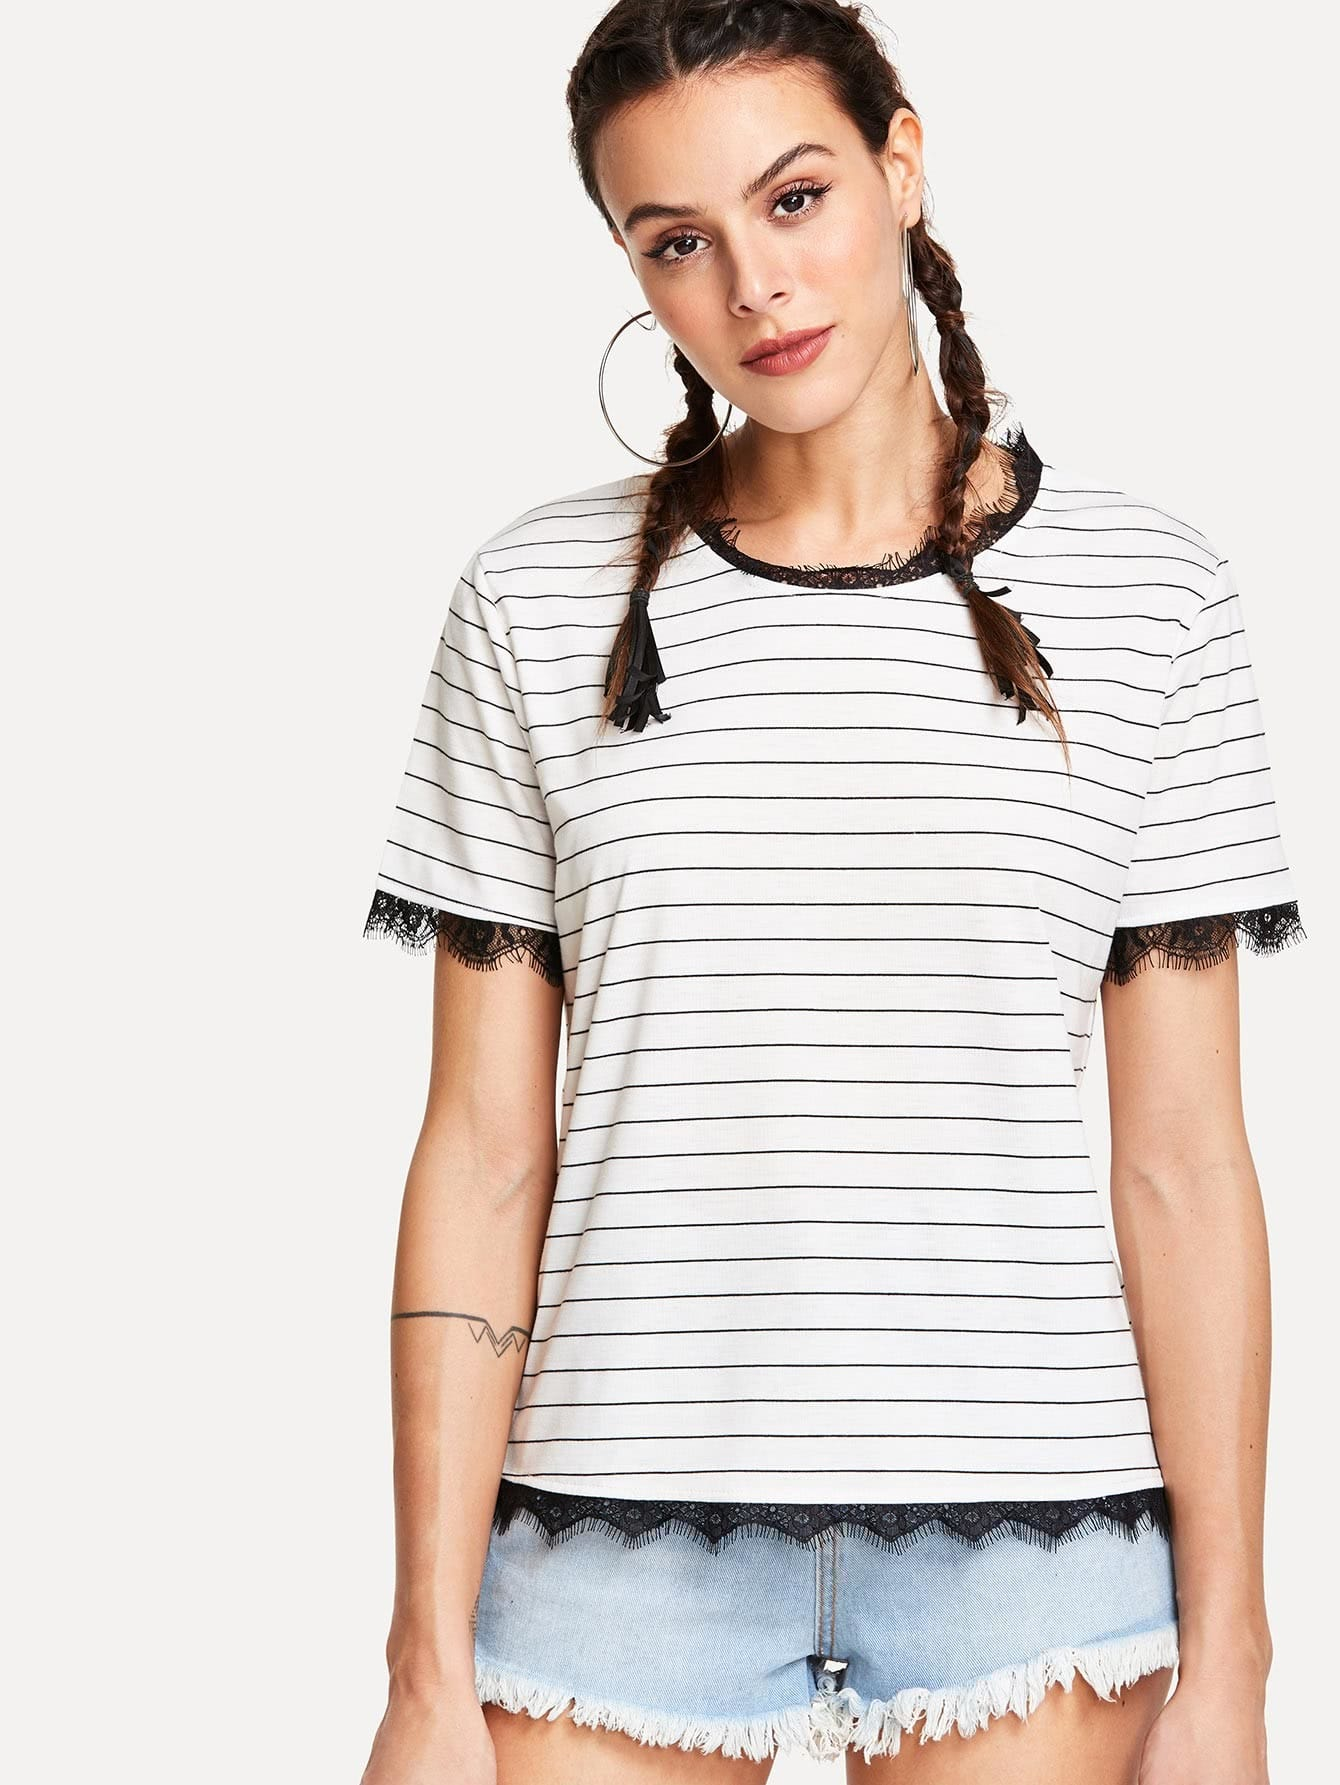 Contrast Eyelash Lace Striped Tee contrast striped trim camo print tee